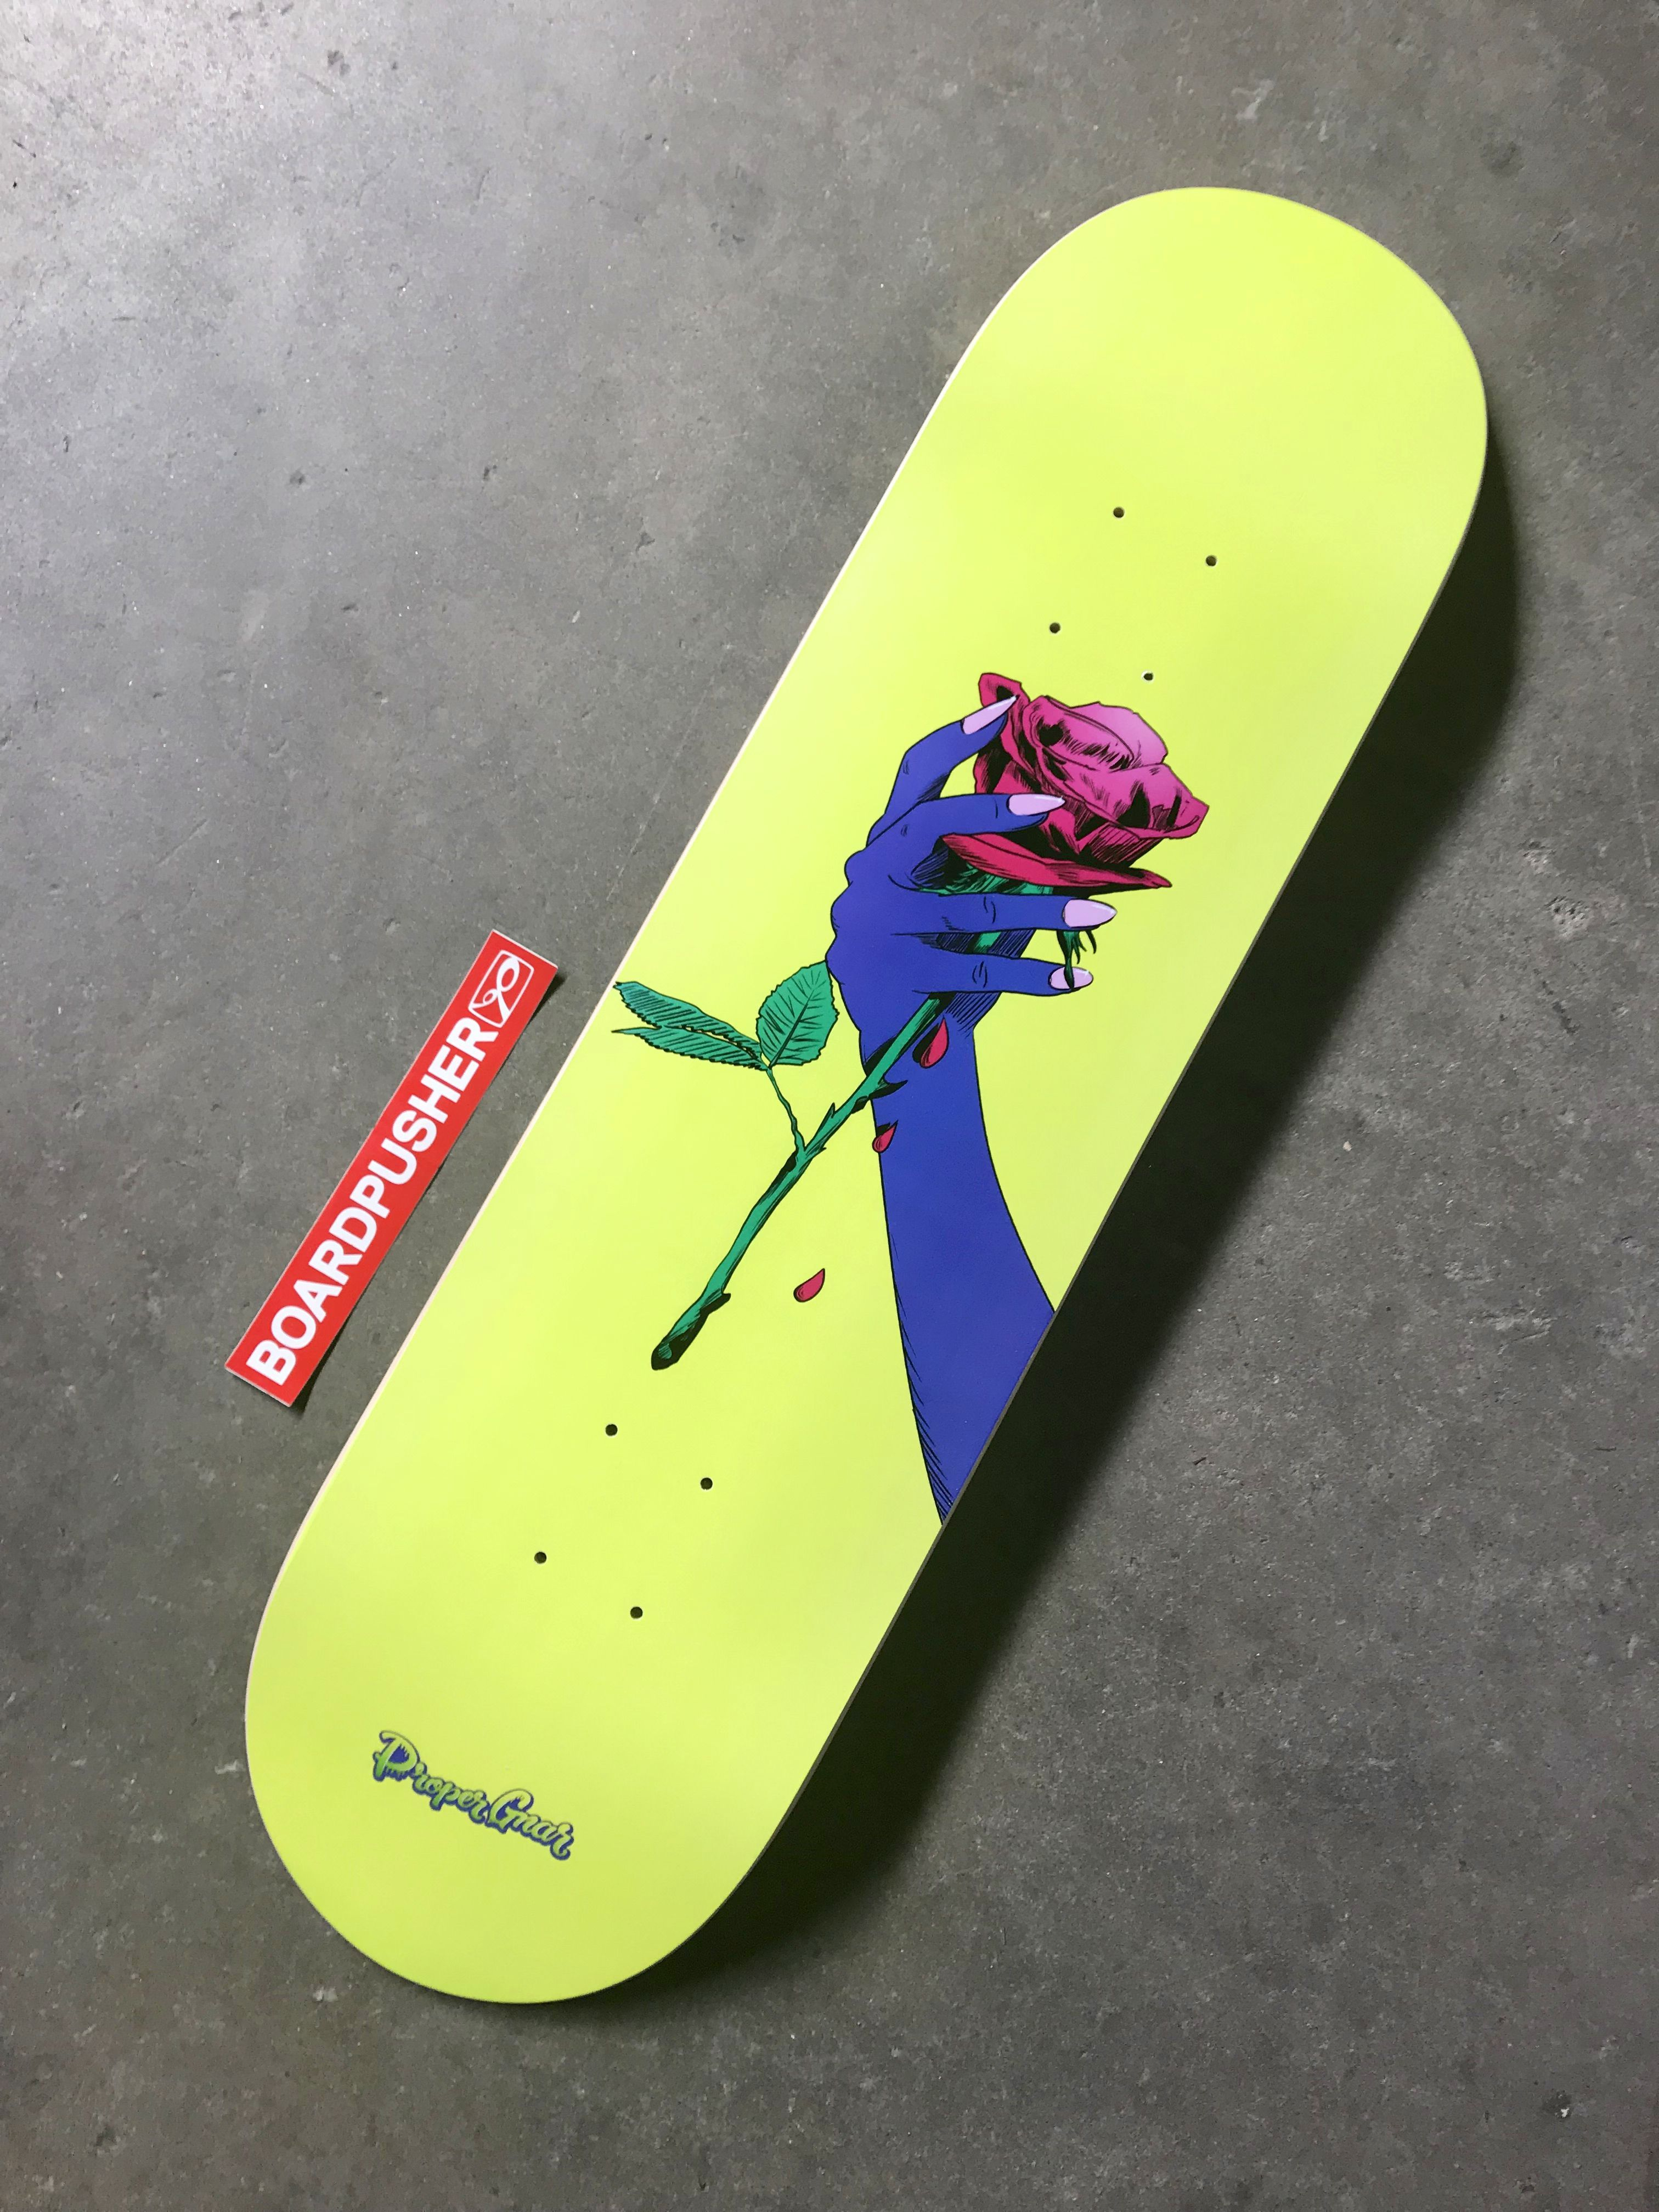 Rose Hand Today S Boardpusher Com Featured Deck Created By Latosha Stone Of Proper Gnar Find Out More Skateboard Deck Art Skateboard Design Painted Skateboard